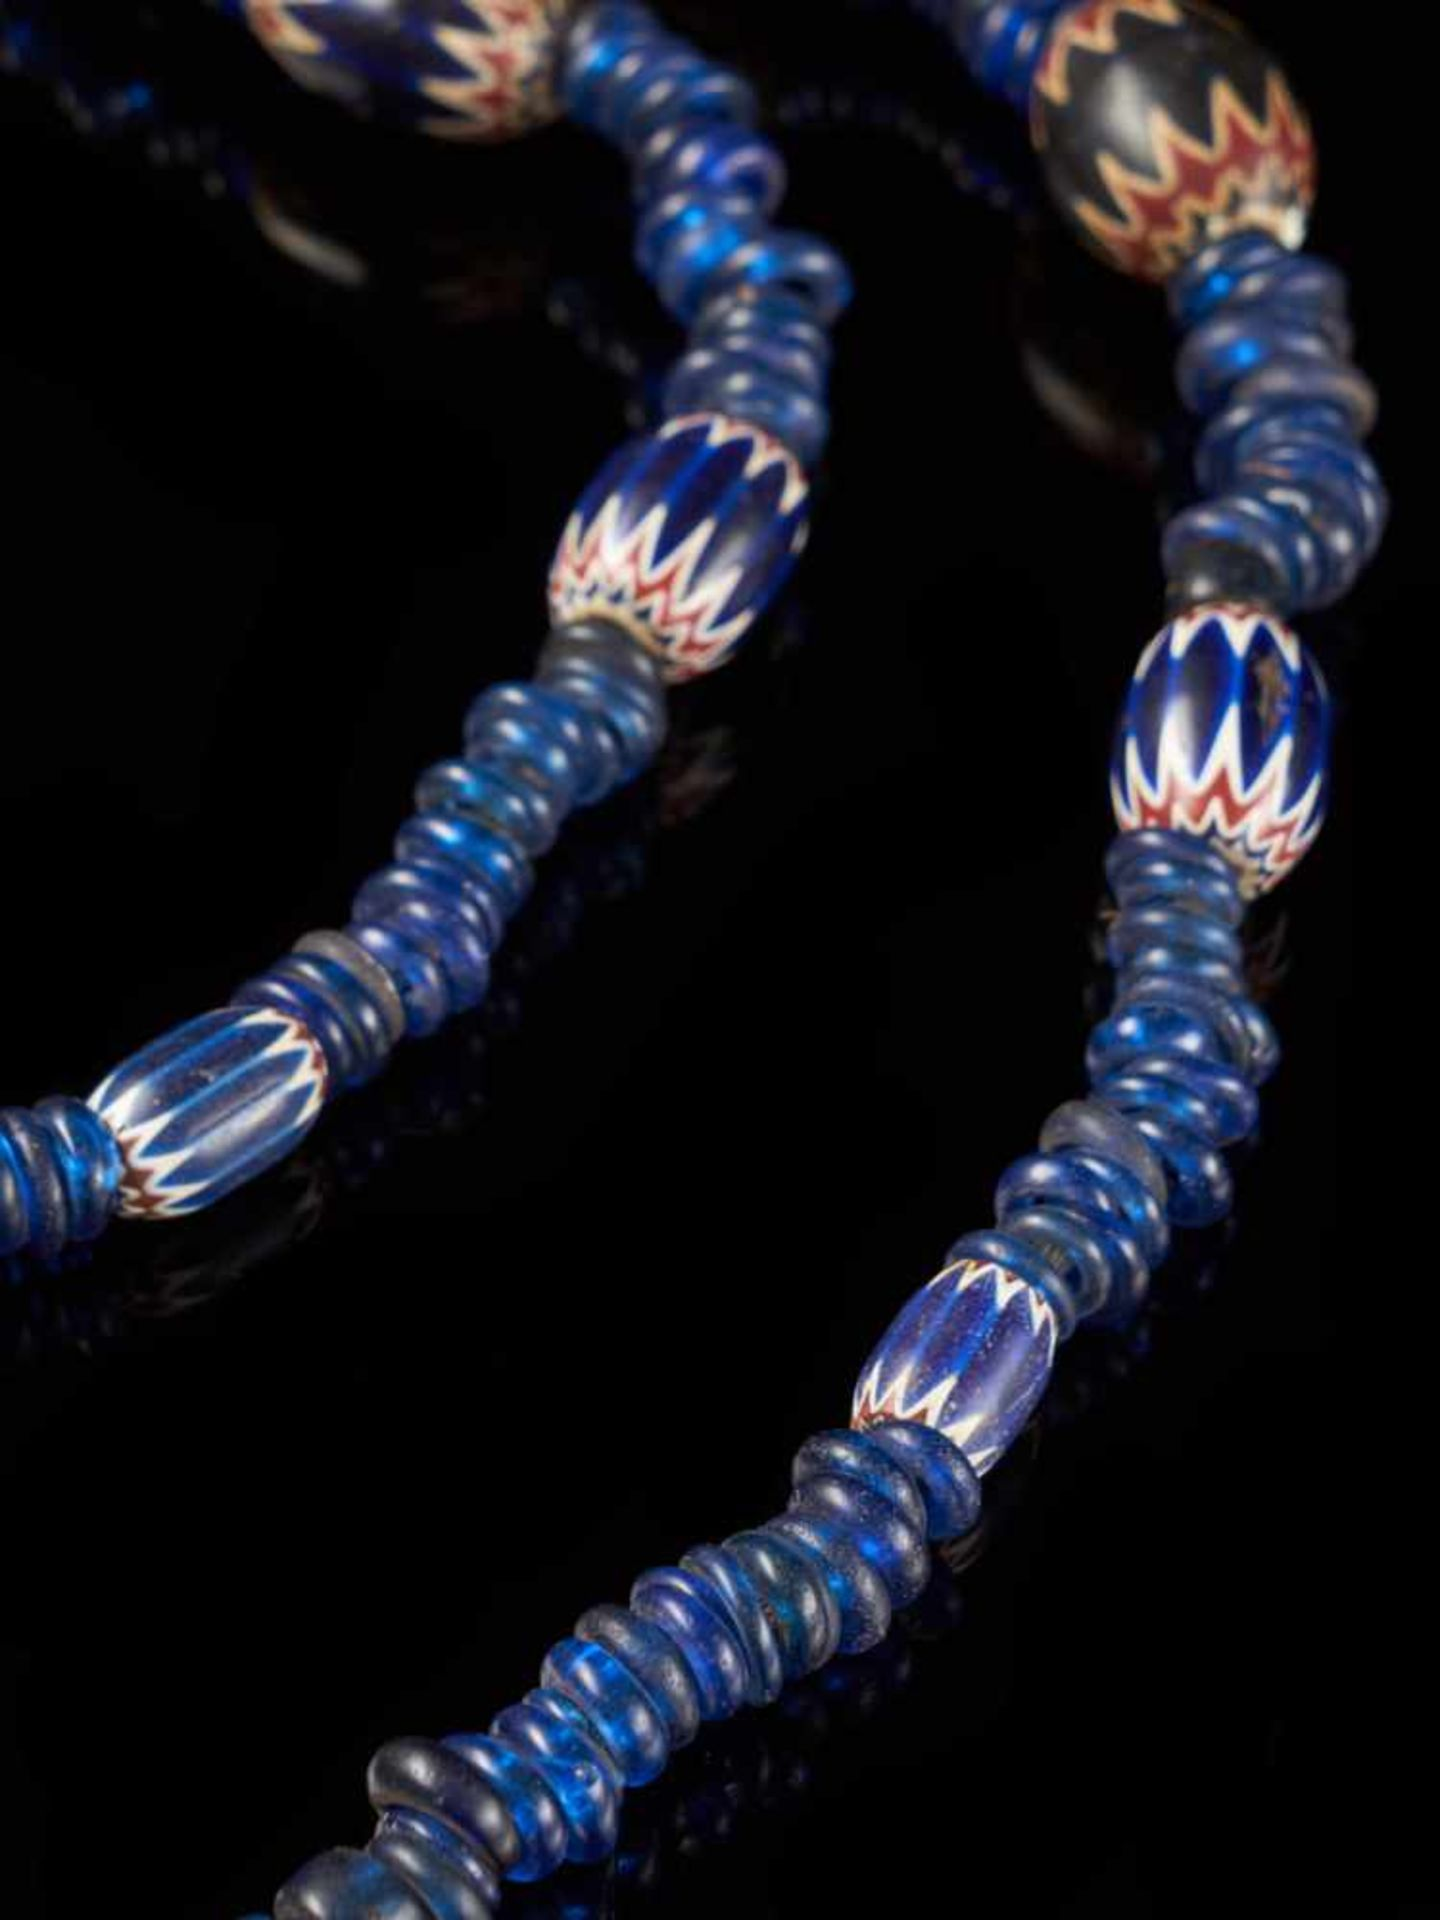 Traditional Bamileke 7 Layer Chevron Trade Bead Necklace - Tribal ArtChevrons beads are made by a - Bild 3 aus 4